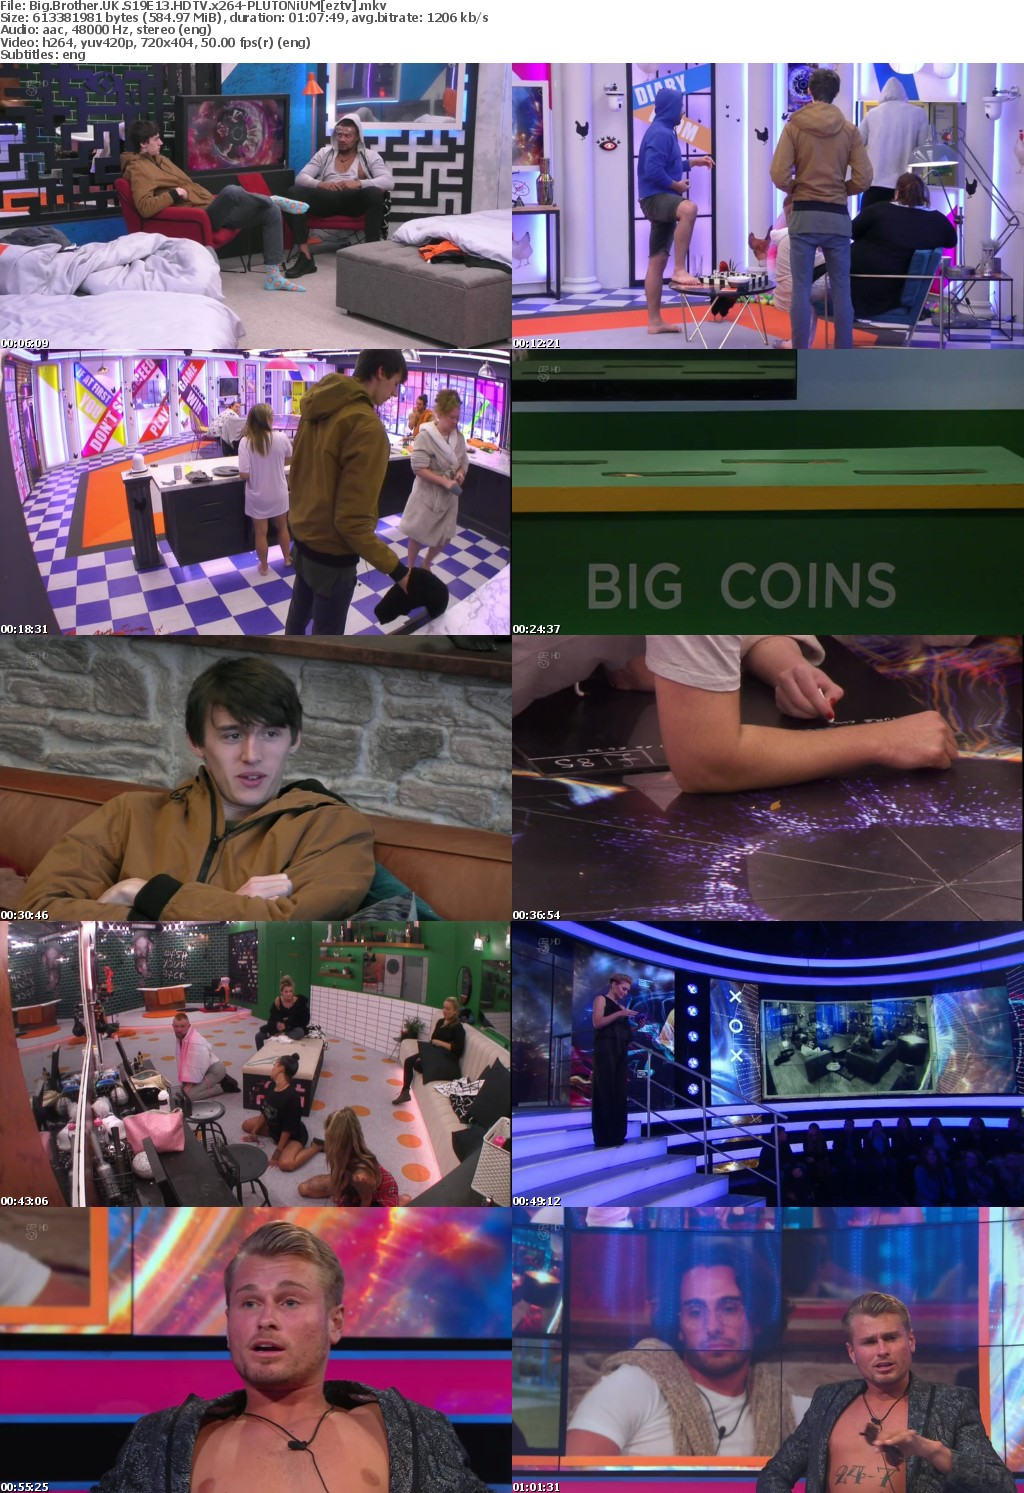 Big Brother UK S19E13 HDTV x264-PLUTONiUM